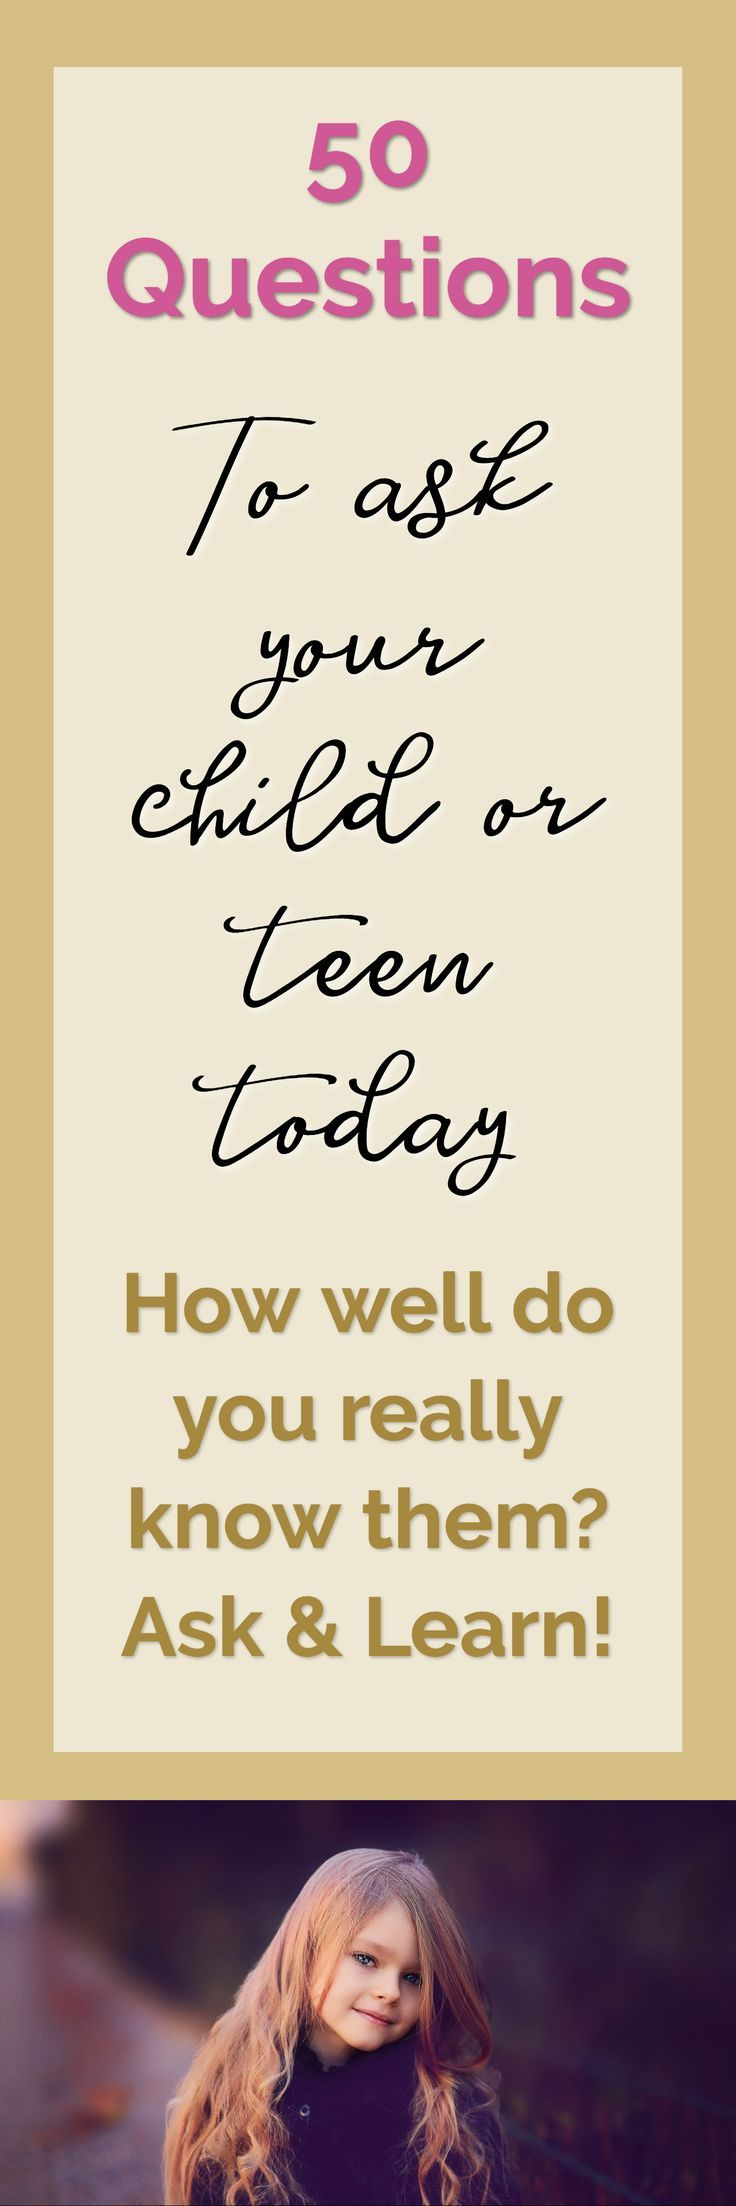 50 Questions To Ask Your Child Or Teen Today | Positive parenting | Quotes for kids | Happy Children | Mommyhood | Tips for moms | Mom advice | Build Resilience | How to raise Confident Kids